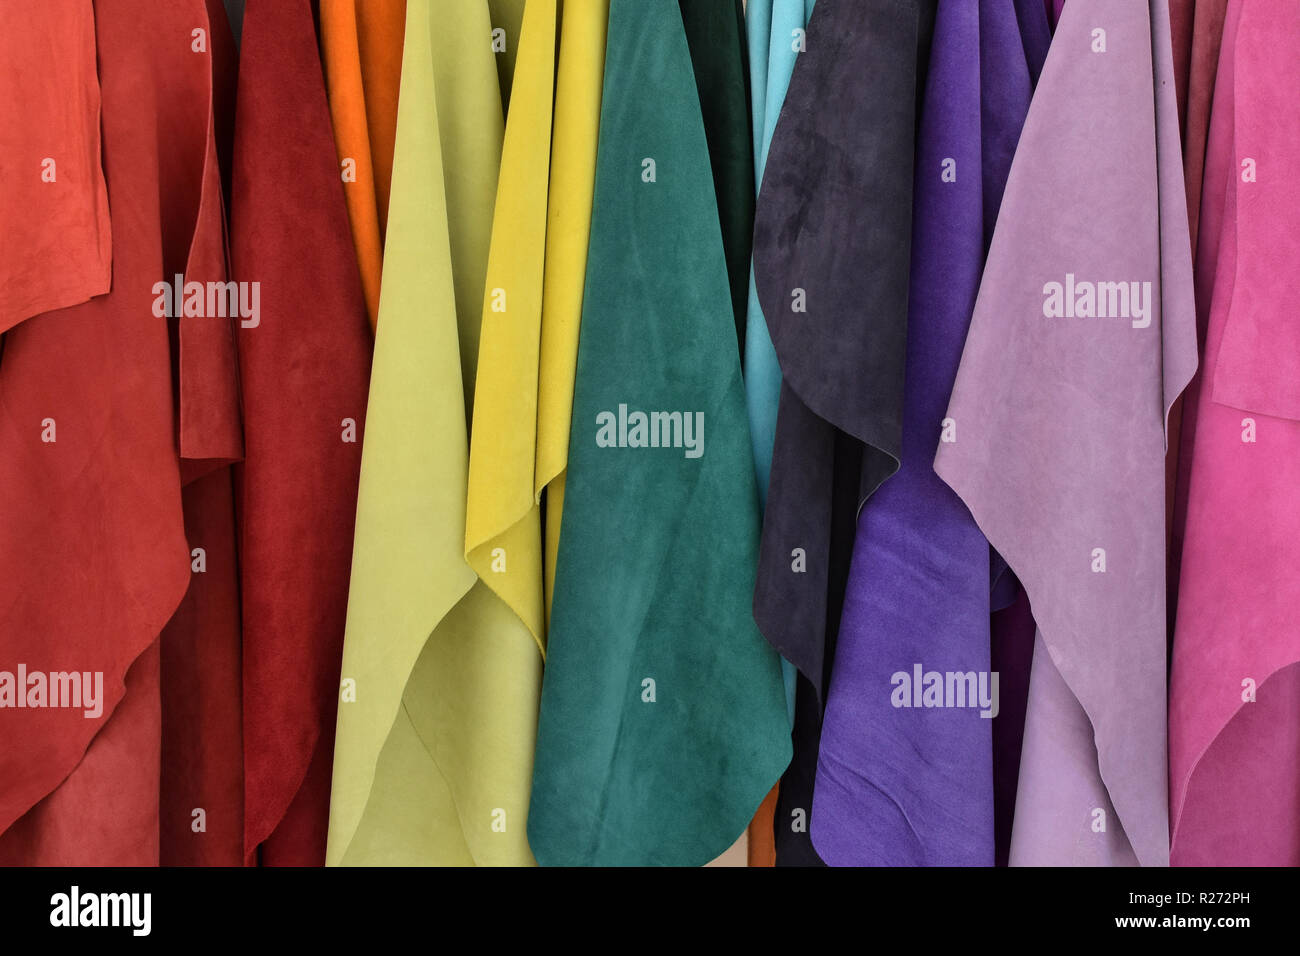 Textiles in various colors material texture. Abstract colorful background. - Stock Image